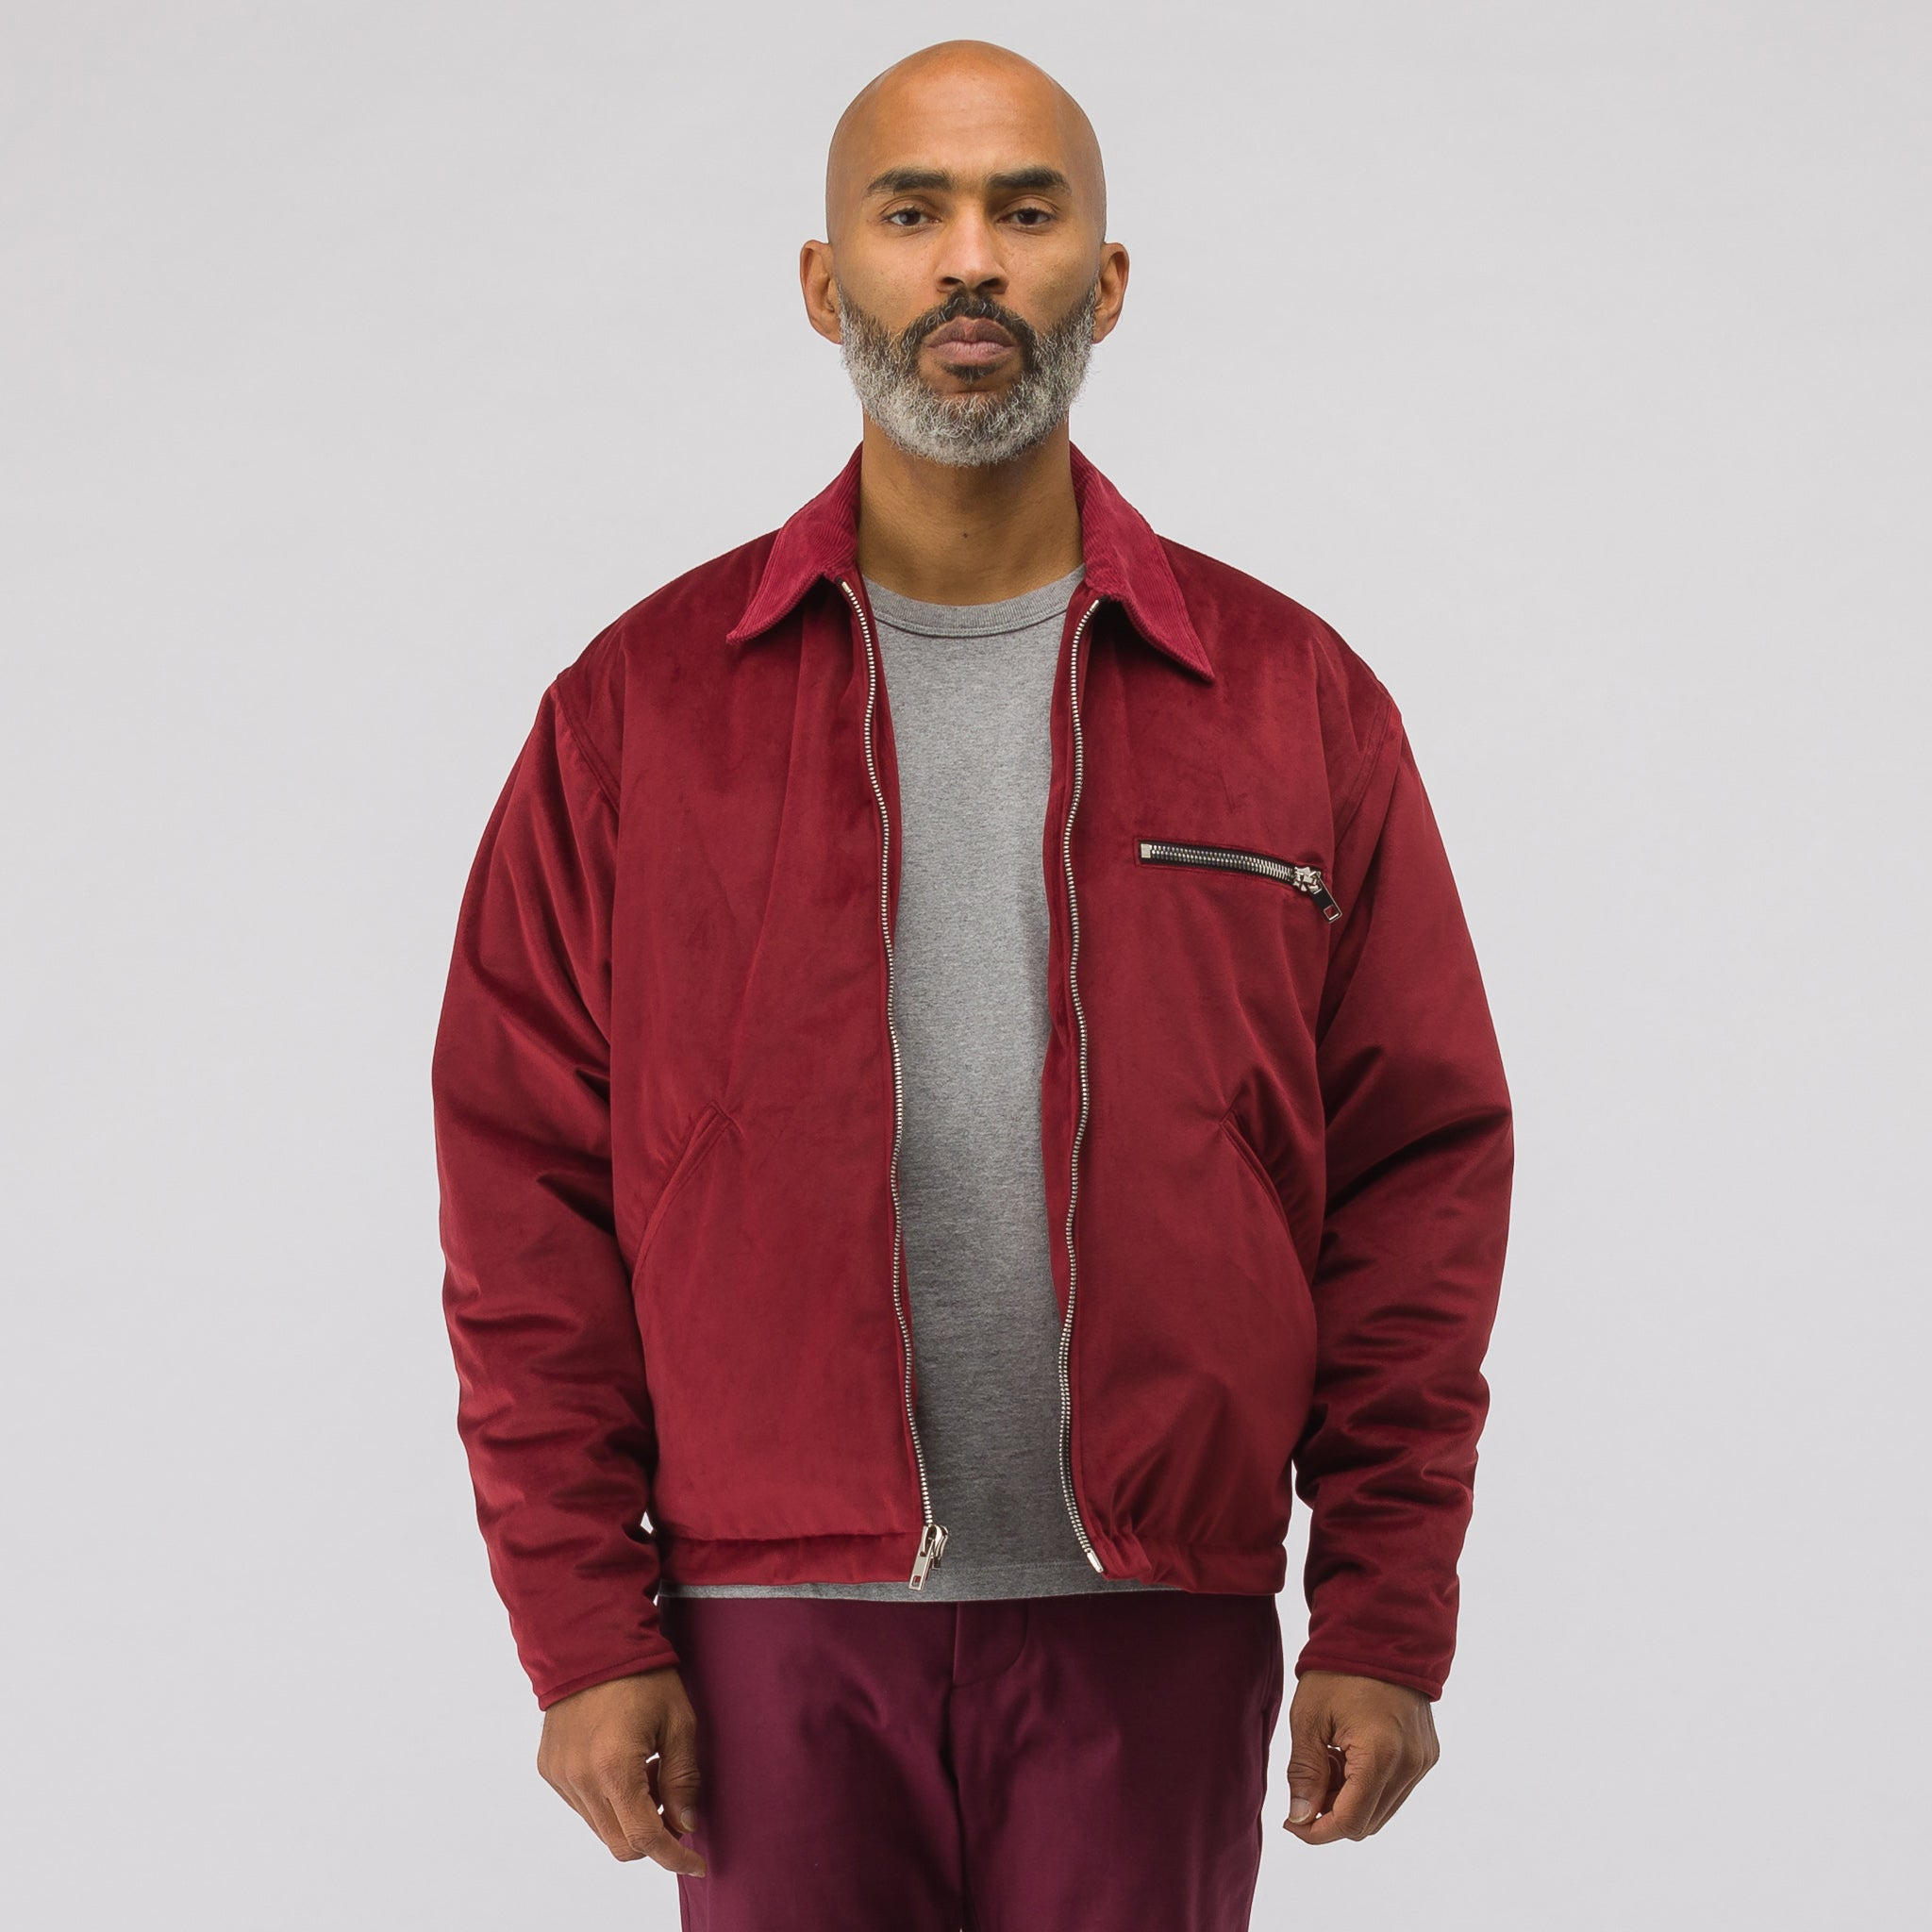 Racenight Jacket in Burgundy